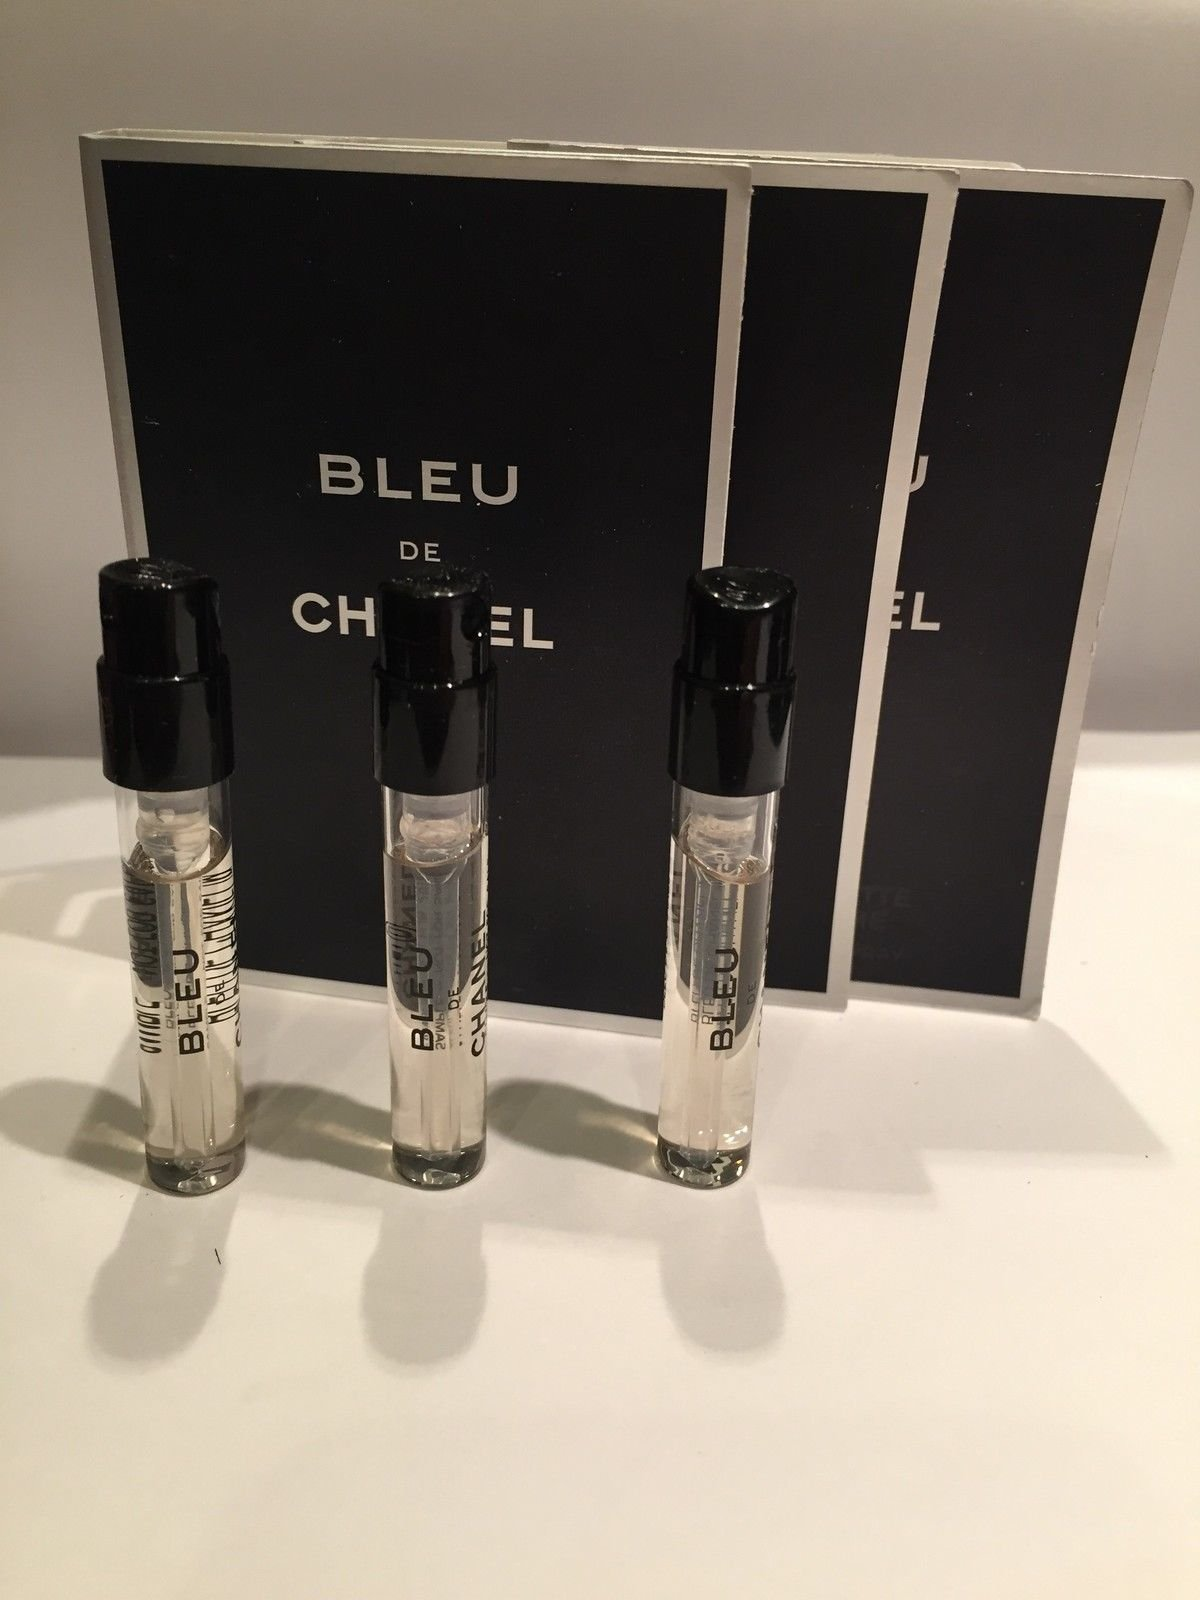 Lot of 3 C H A N E L Bleu De 1.5ml EDT Sample Sprays For Men